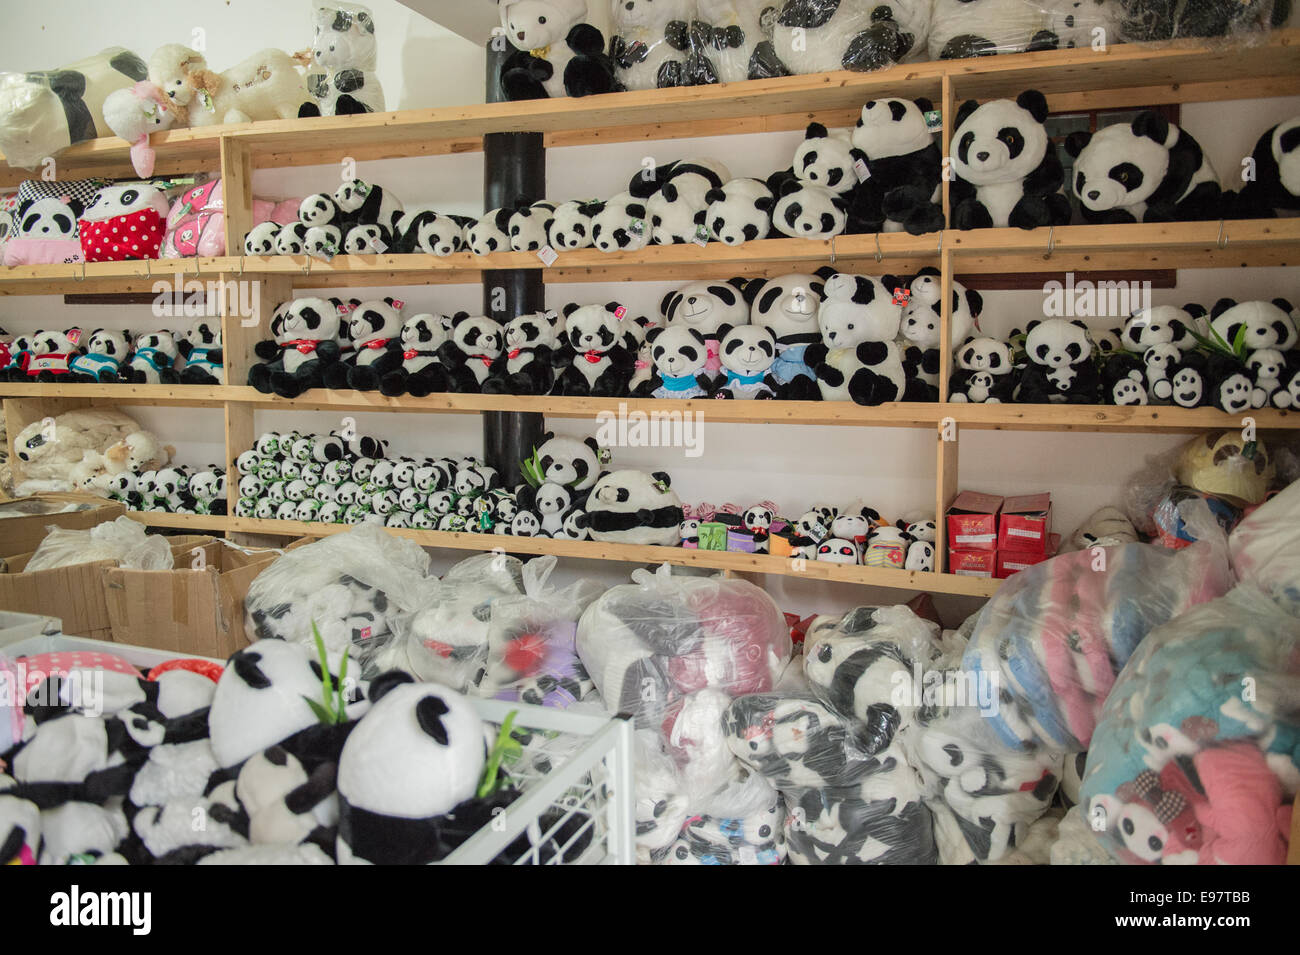 Panda toys and memorabilia for sale in Ya'an, Sichuan, China. (Photo by Ami Vitale) - Stock Image